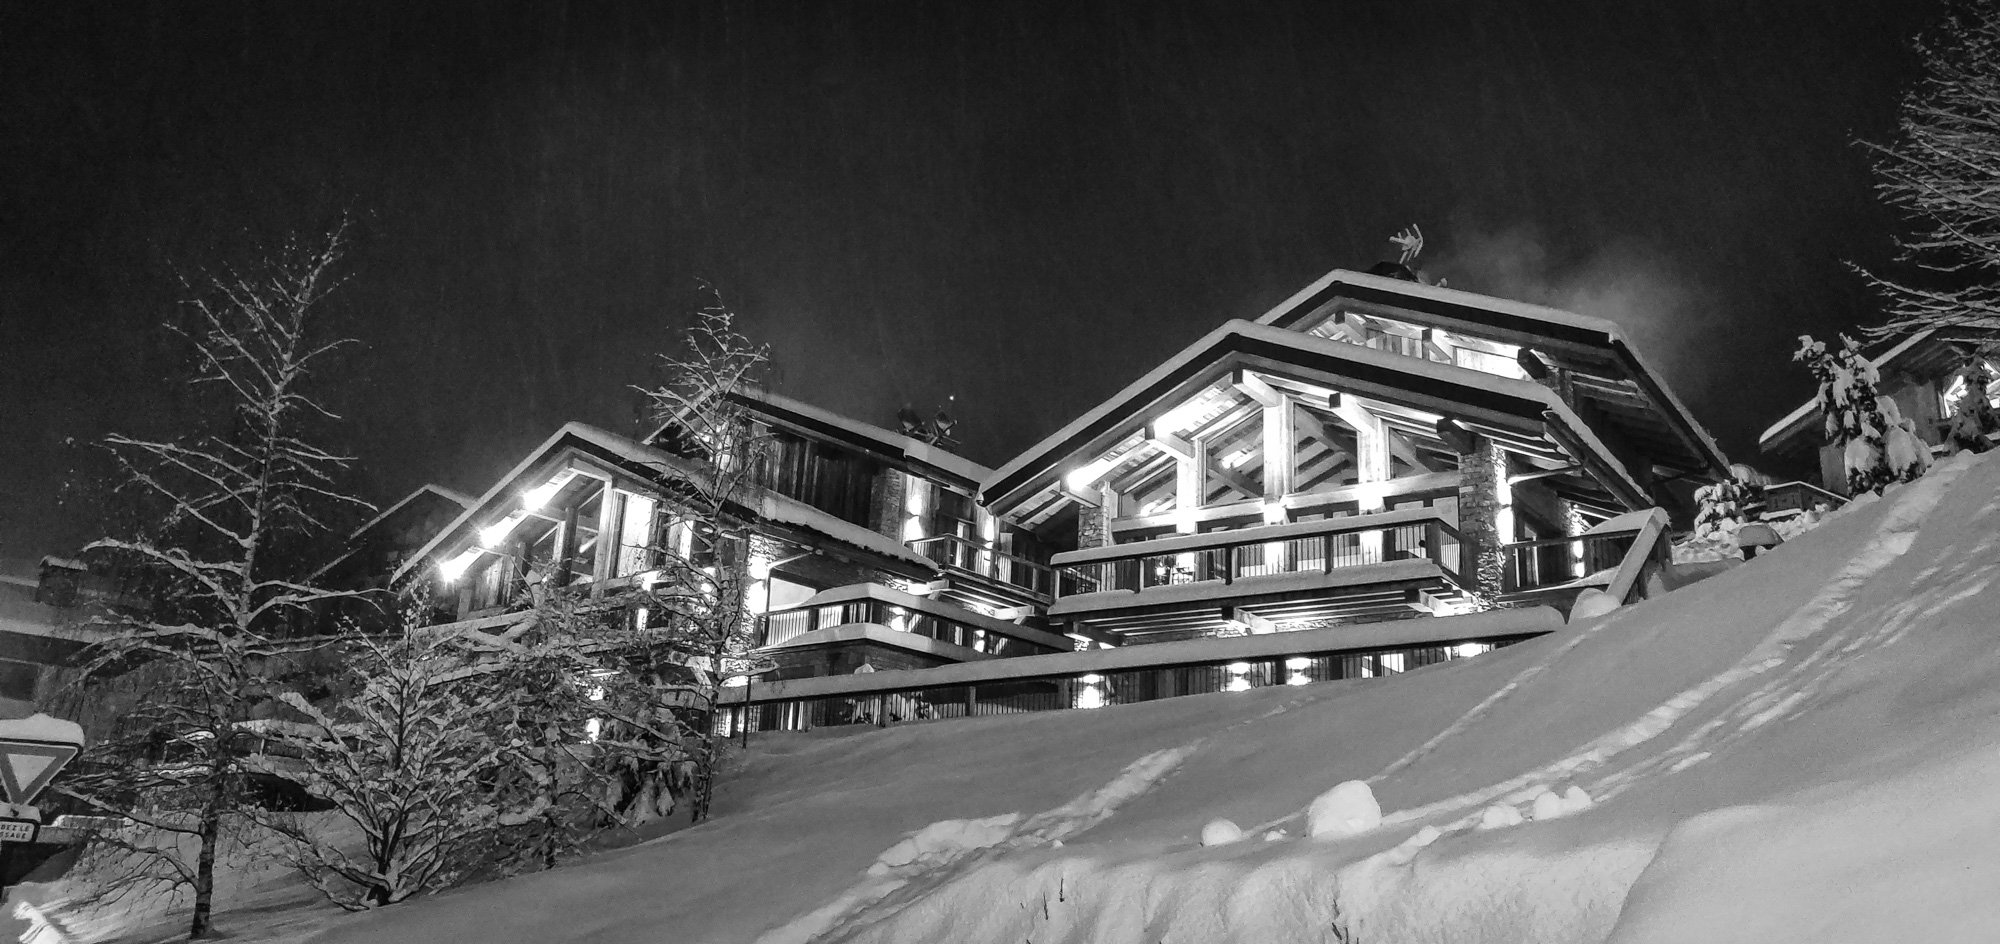 Chalet des Coeurs on a snowy evening